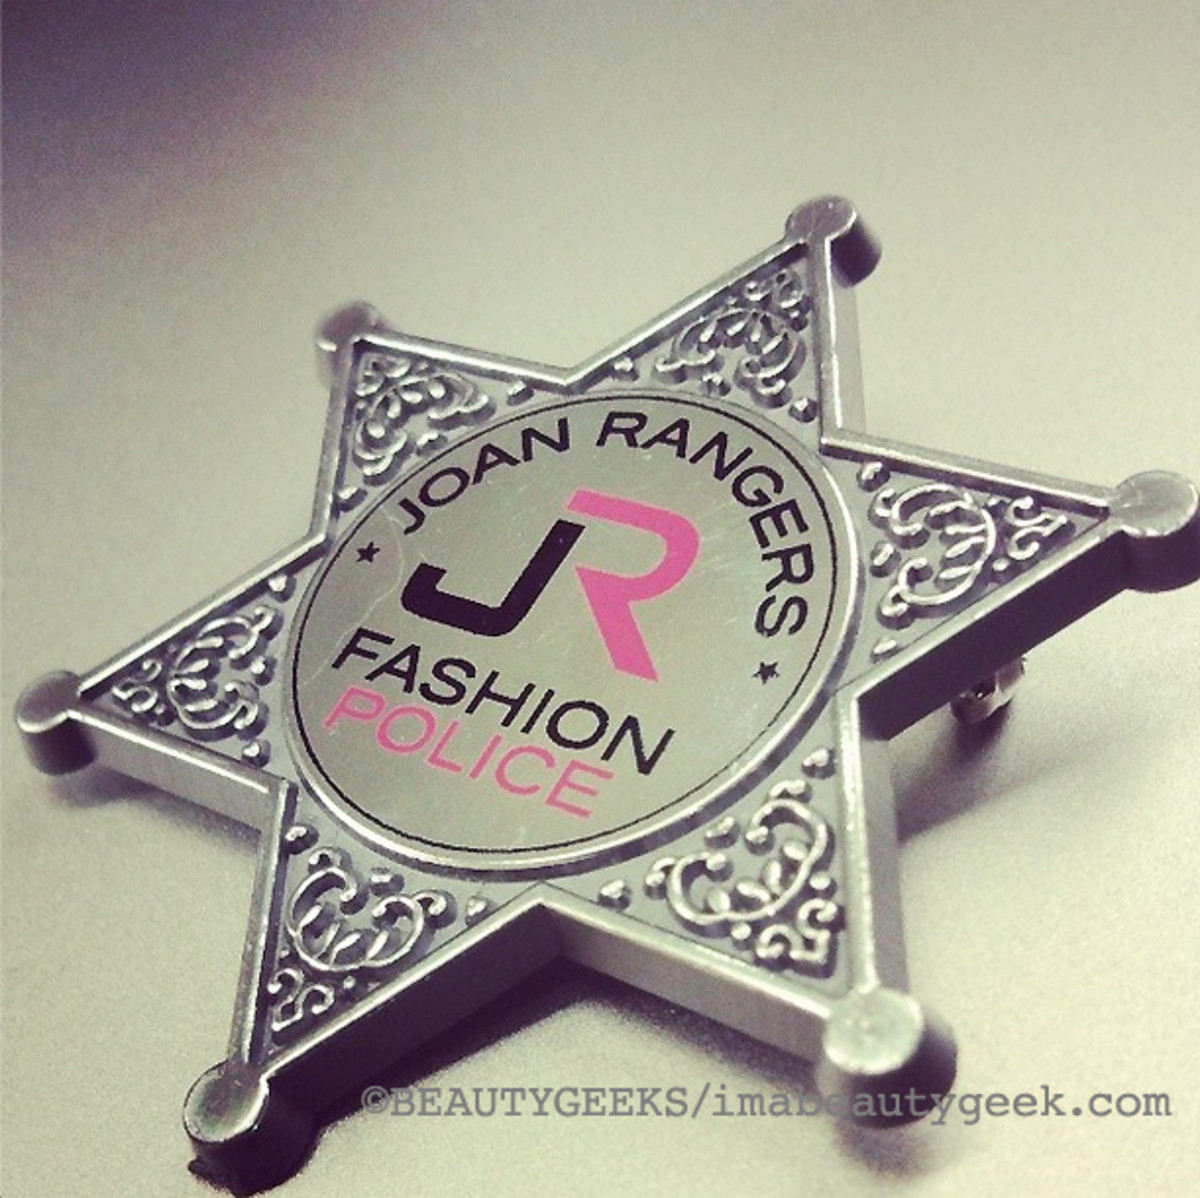 Joan Rangers_Fashion Police pin